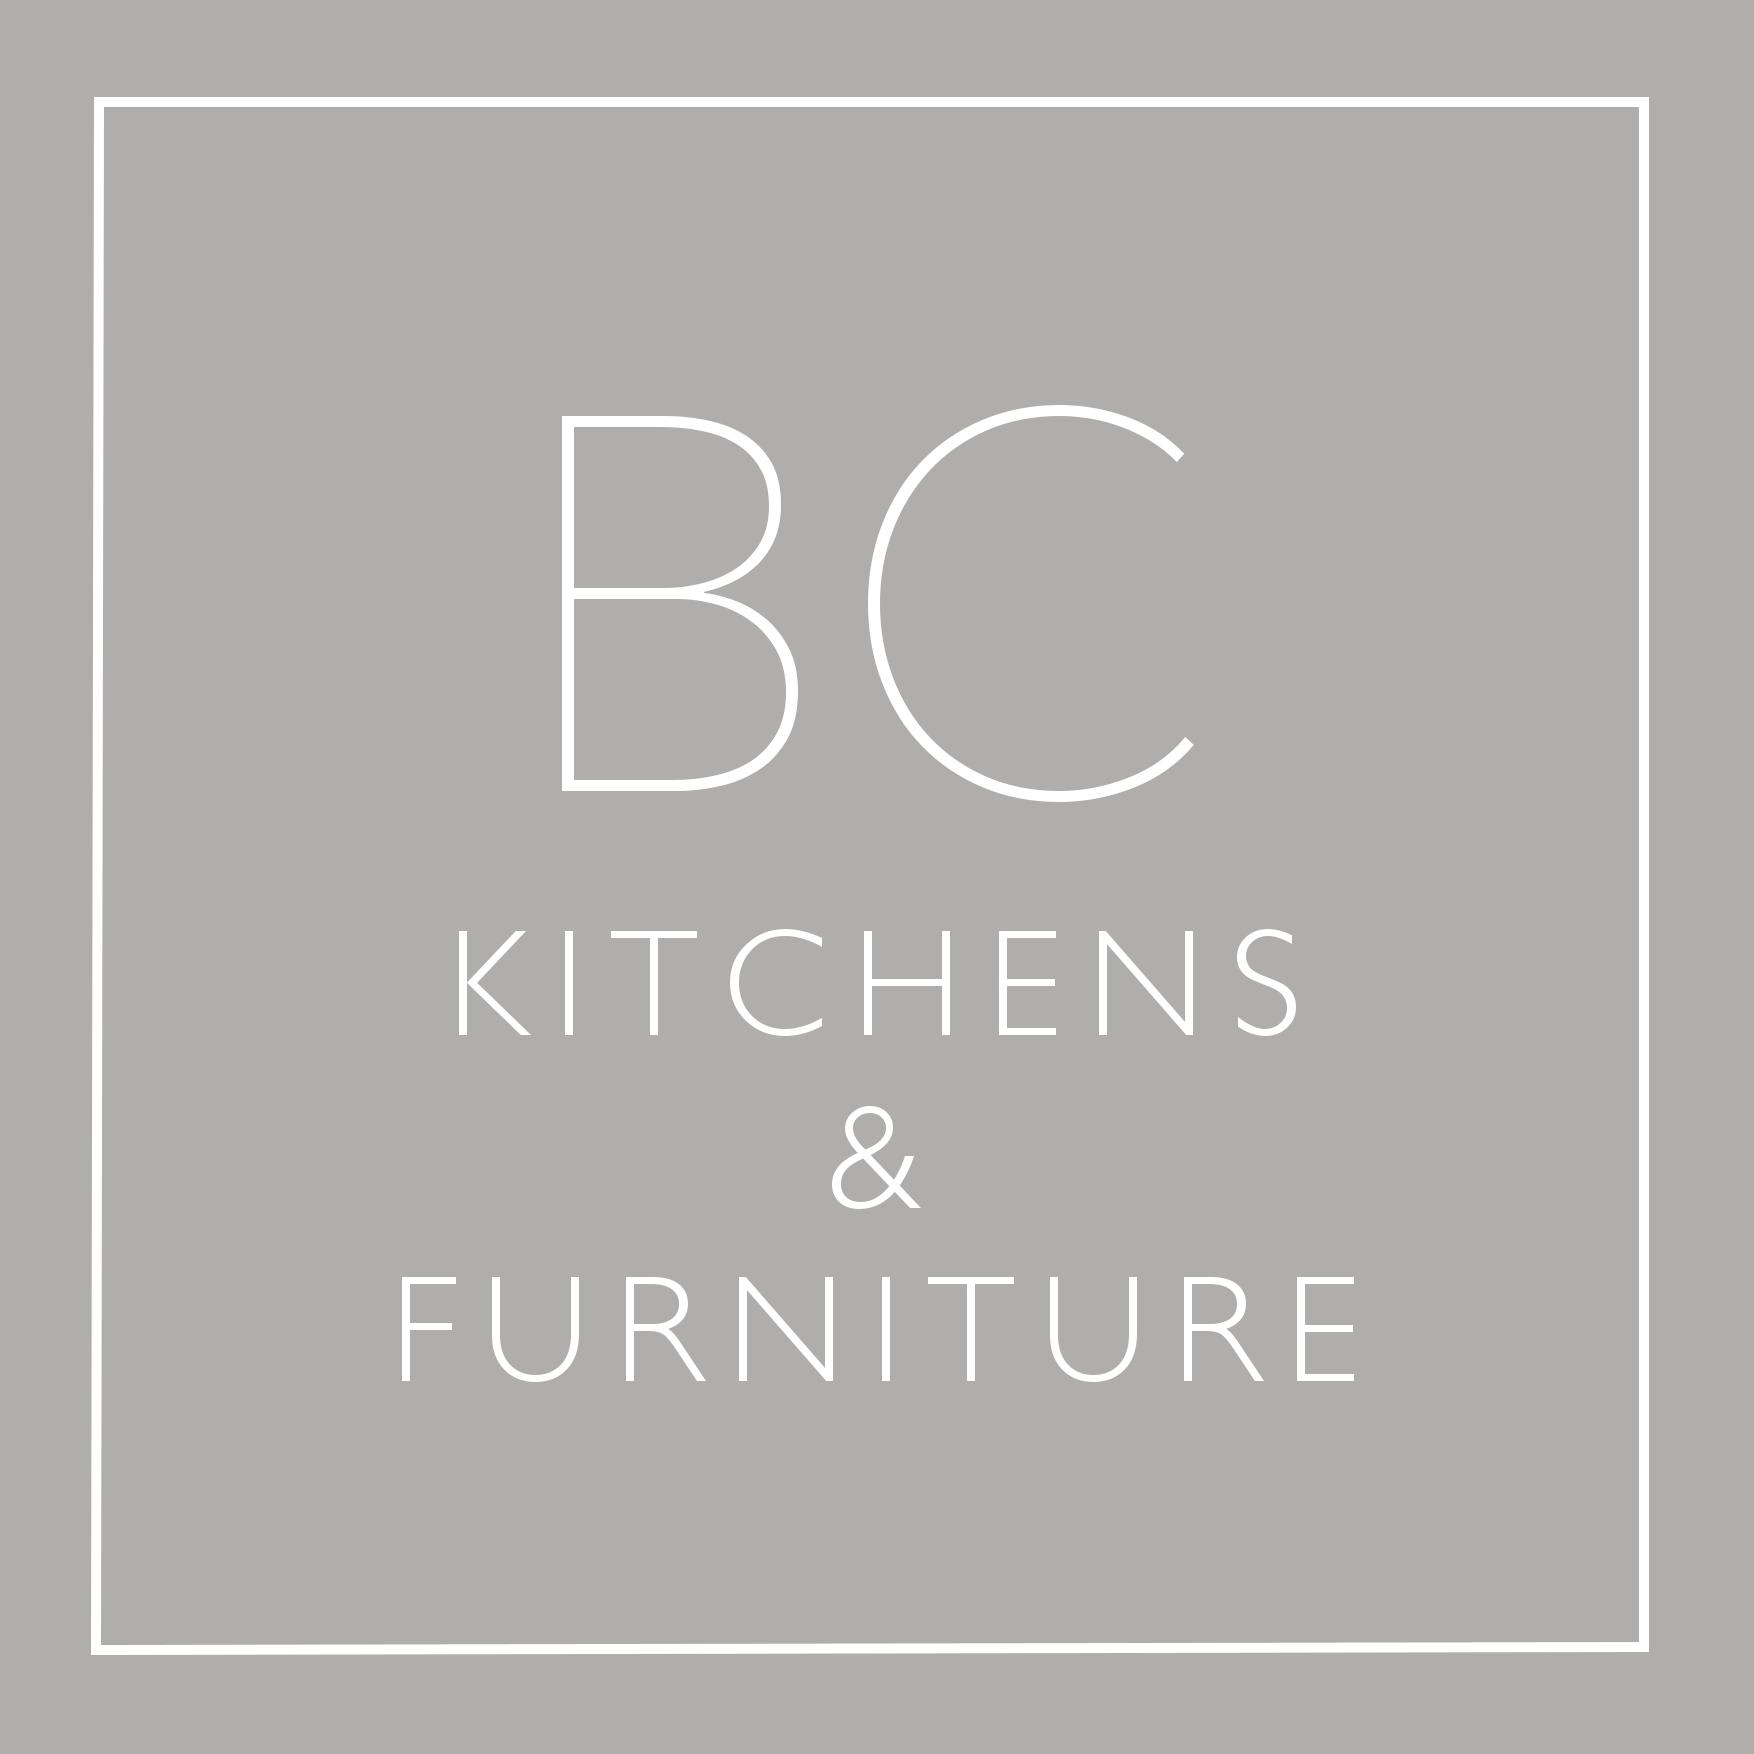 BC Kitchens & Furniture - Buckingham, Buckinghamshire MK18 4DY - 07568 555088 | ShowMeLocal.com